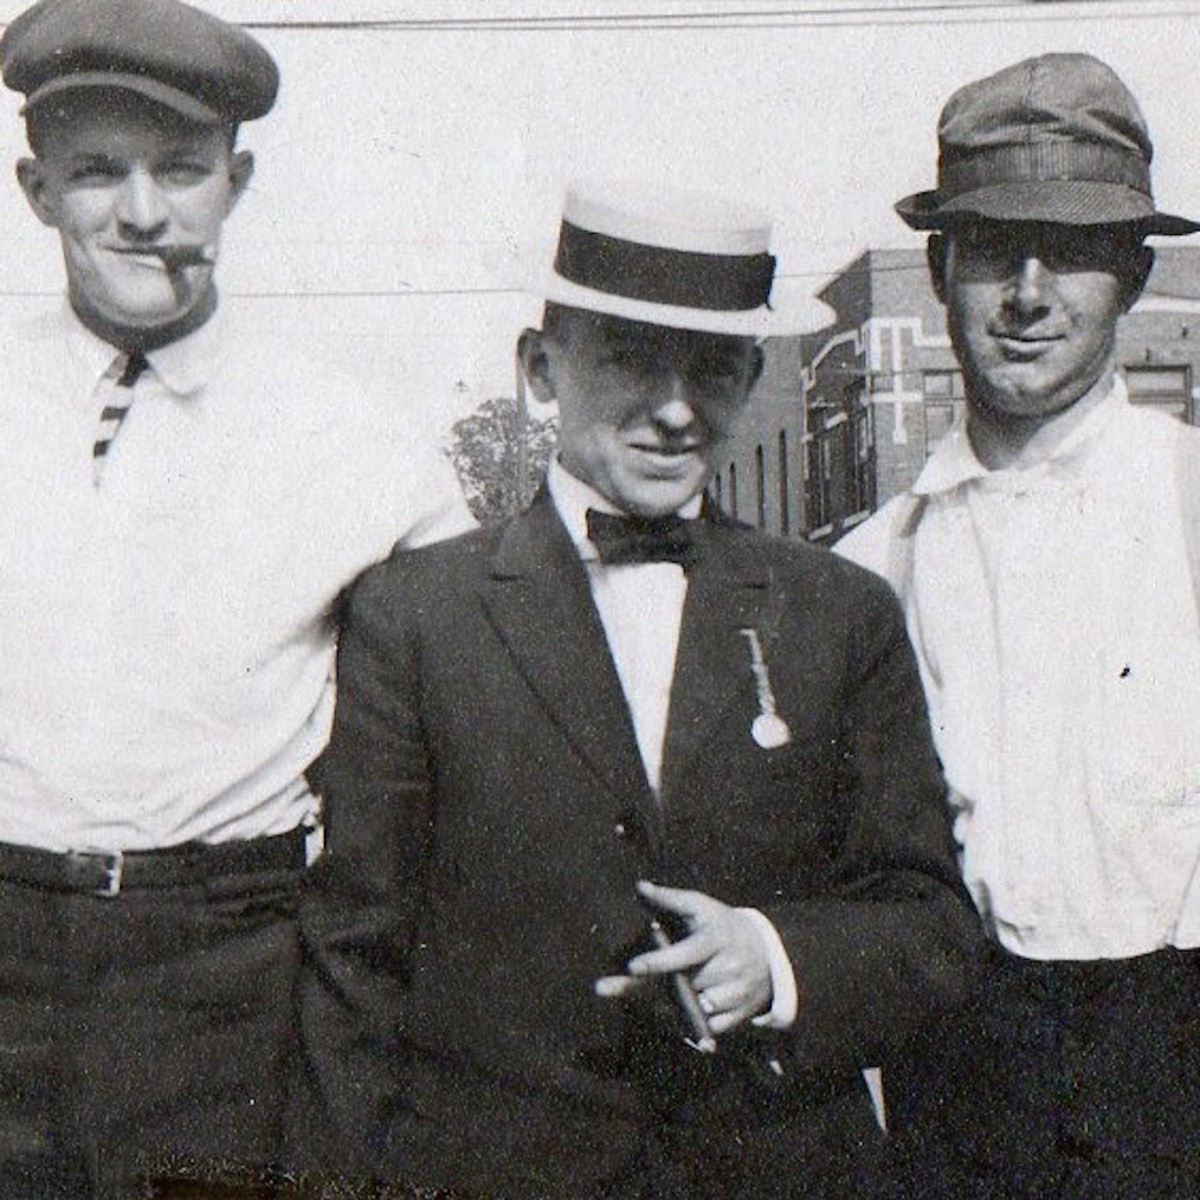 Irish immigrants in Kansas City, Missouri, in the early 20th century.